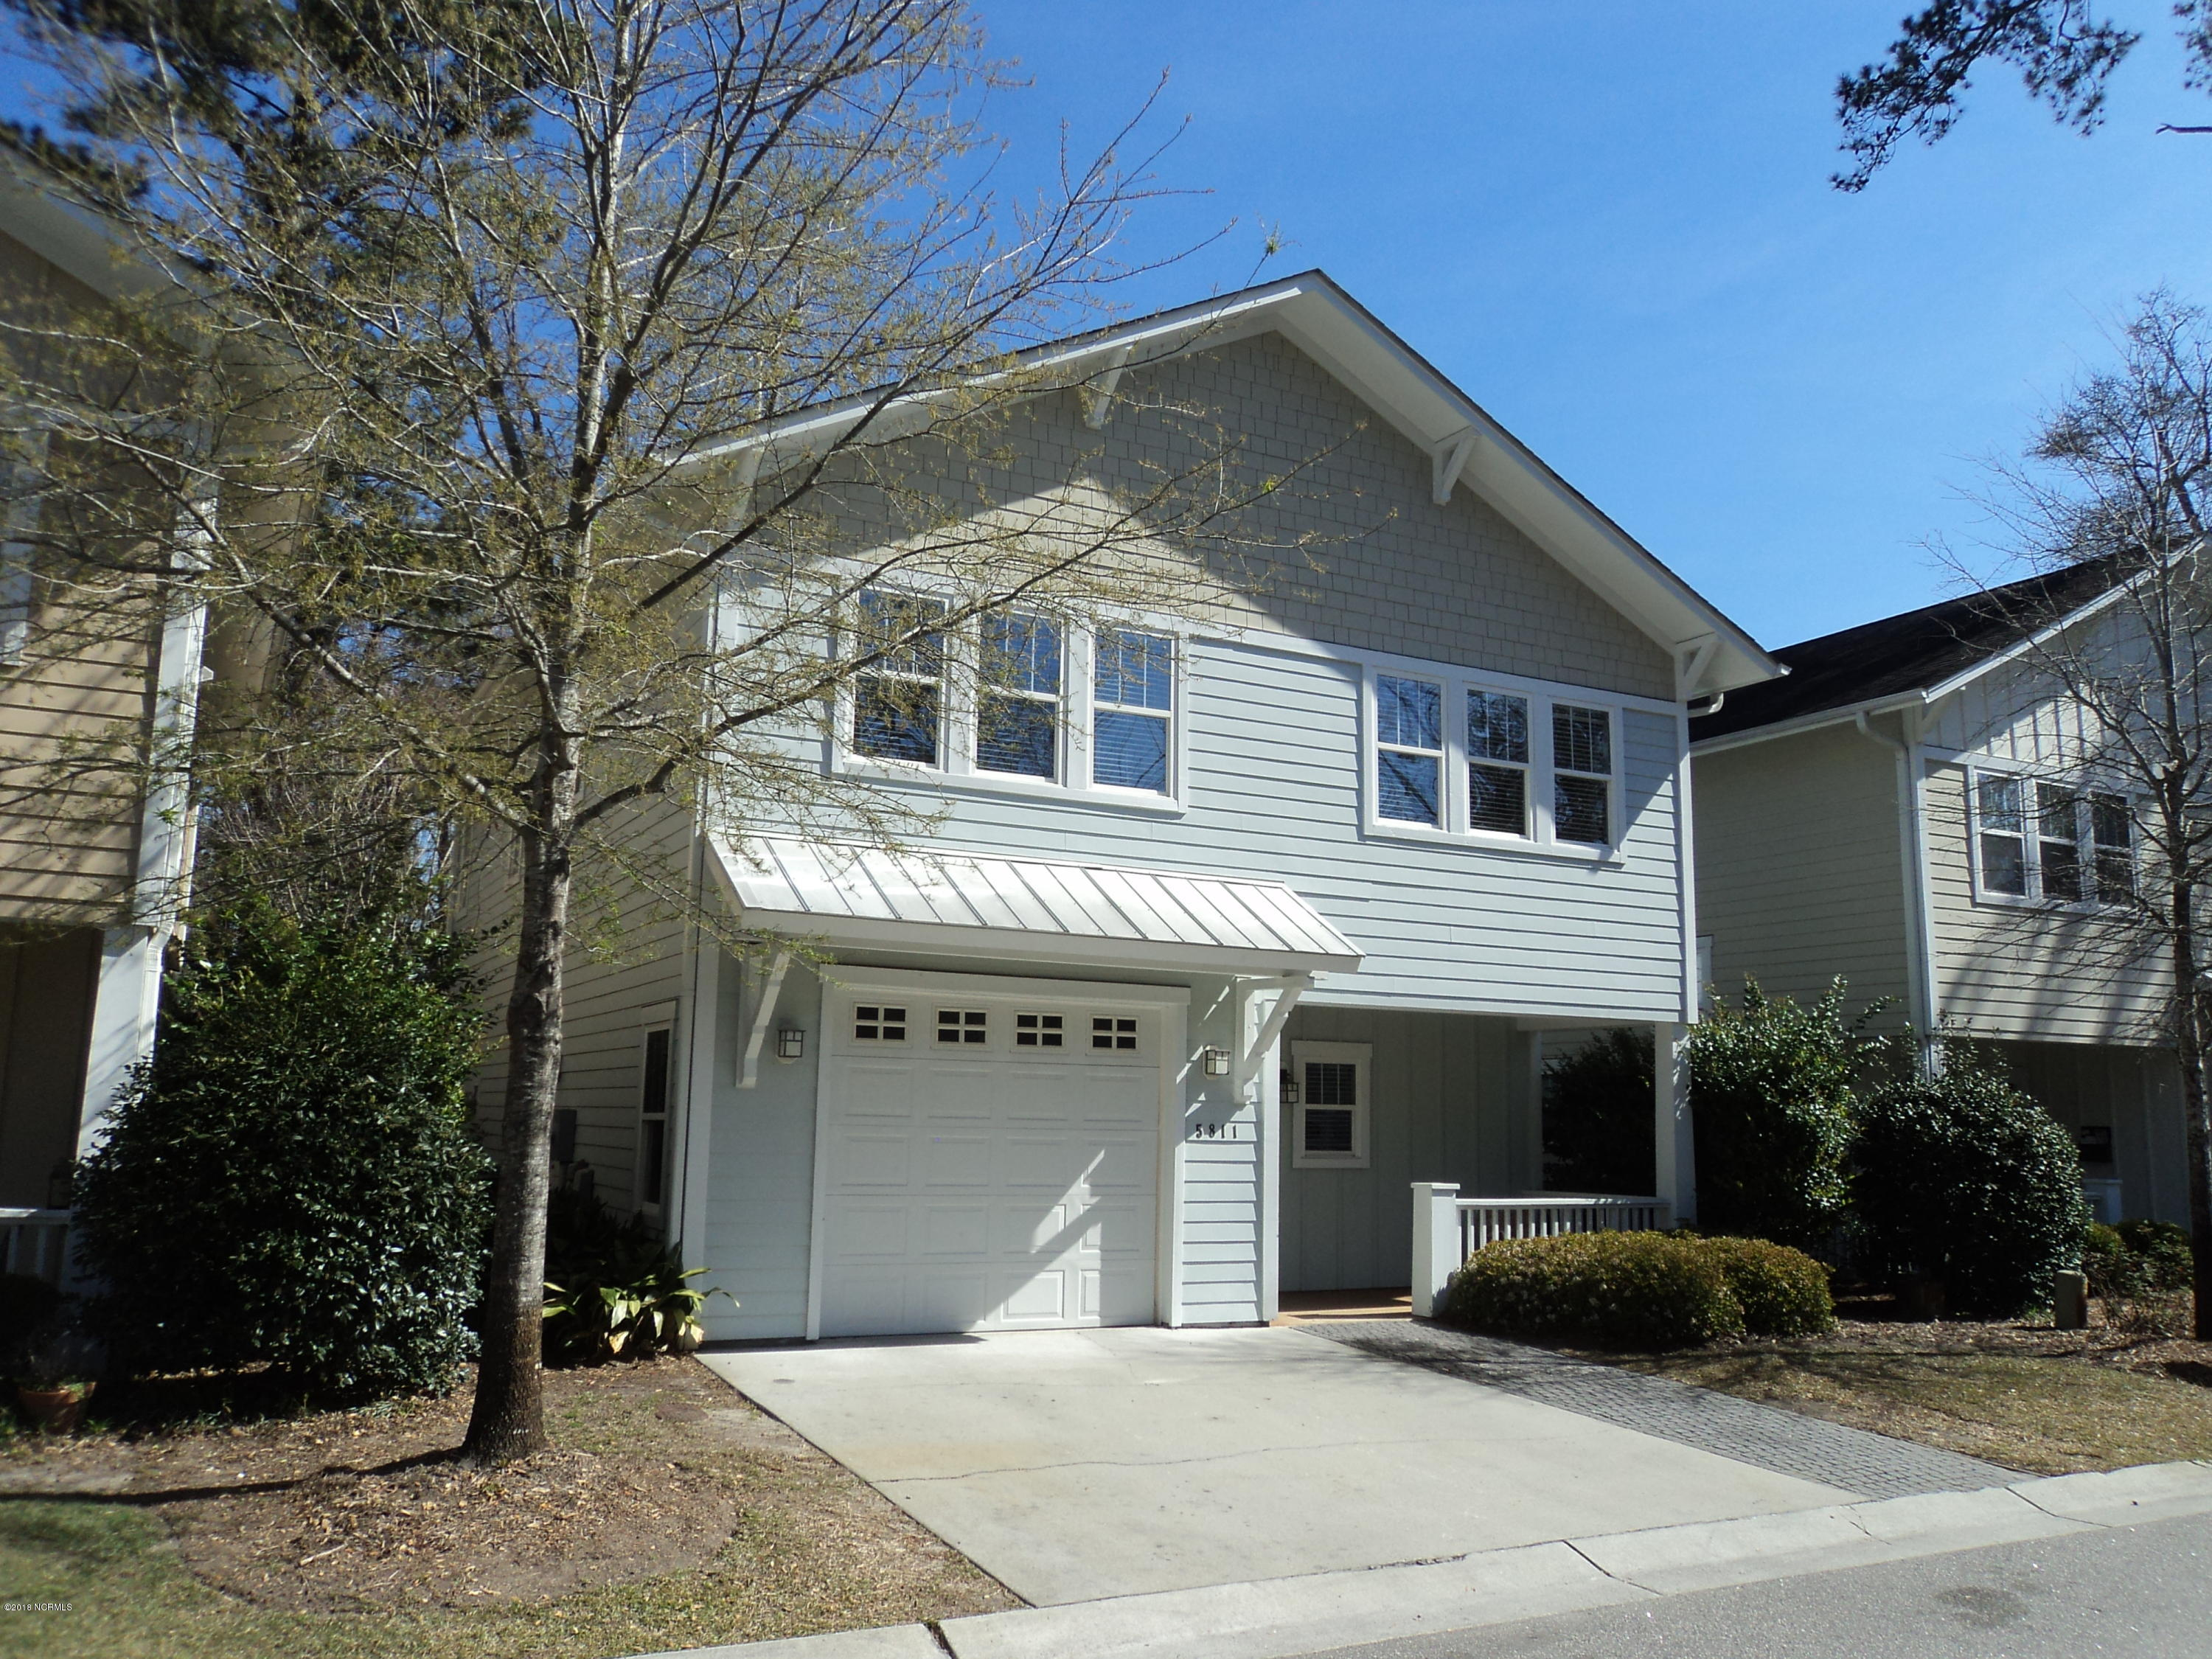 5803 Perennial Lane, Wilmington, North Carolina, 3 Bedrooms Bedrooms, 8 Rooms Rooms,2 BathroomsBathrooms,Single family residence,For sale,Perennial,100139649